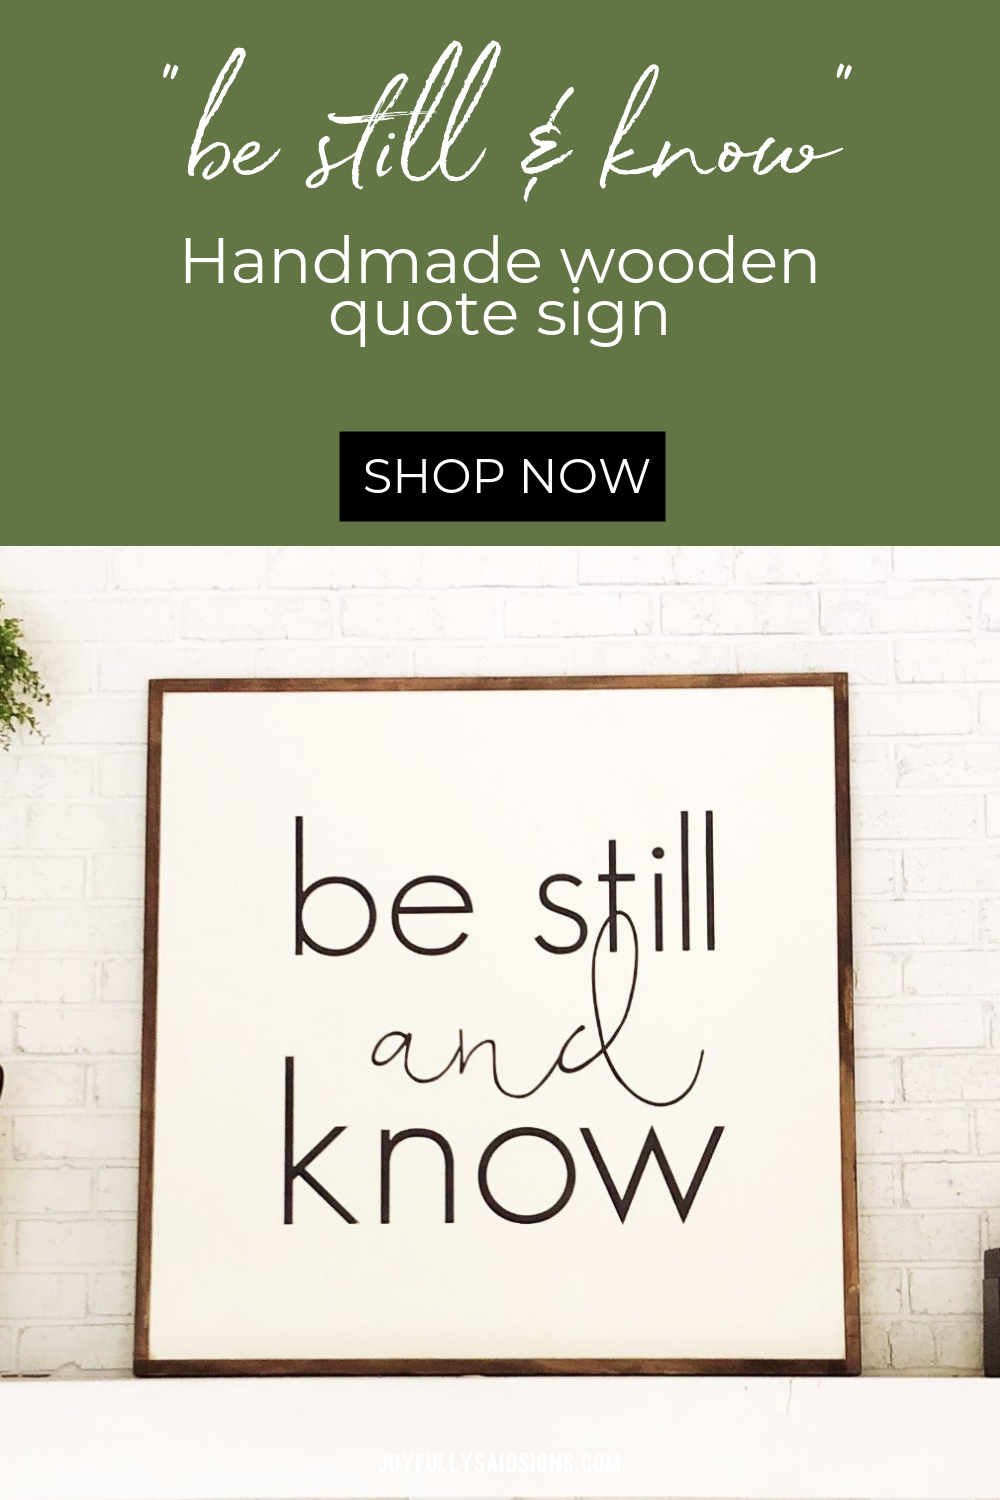 Be still and know | Square Wood Sign images